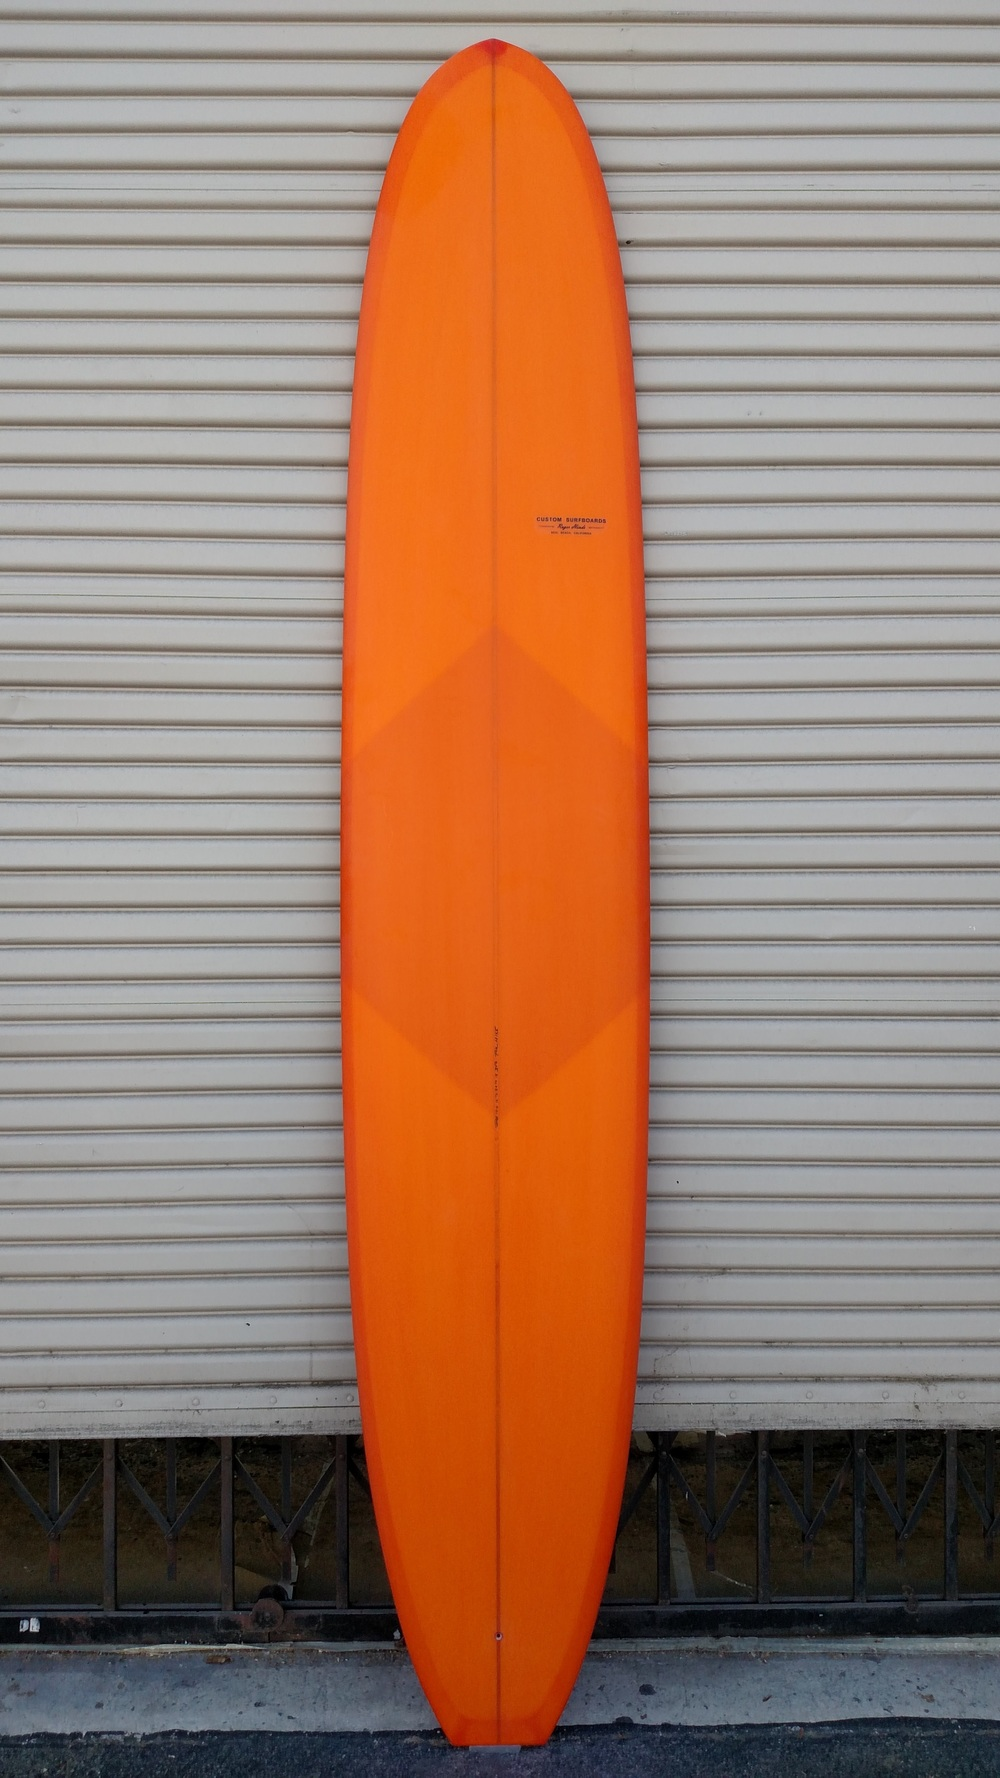 Roger-Hinds-Surfboards-Malolo_Deck_Pumpkin.jpg